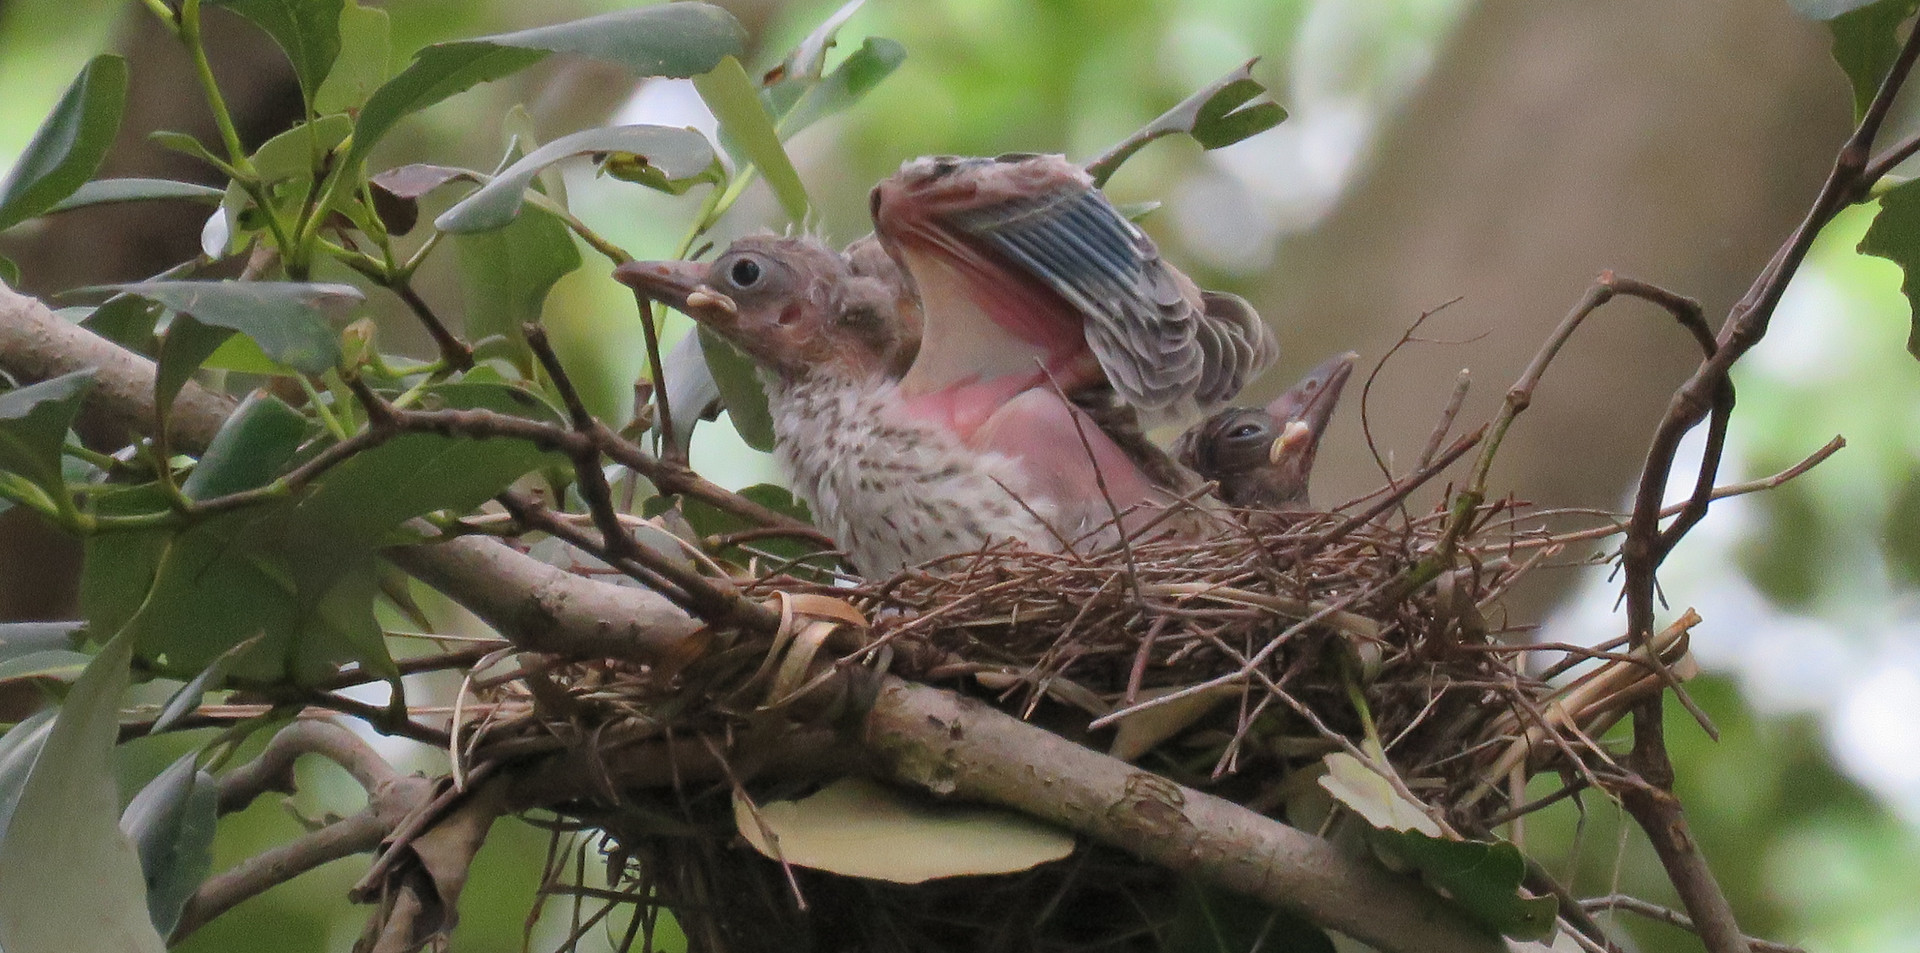 Chick in the nest